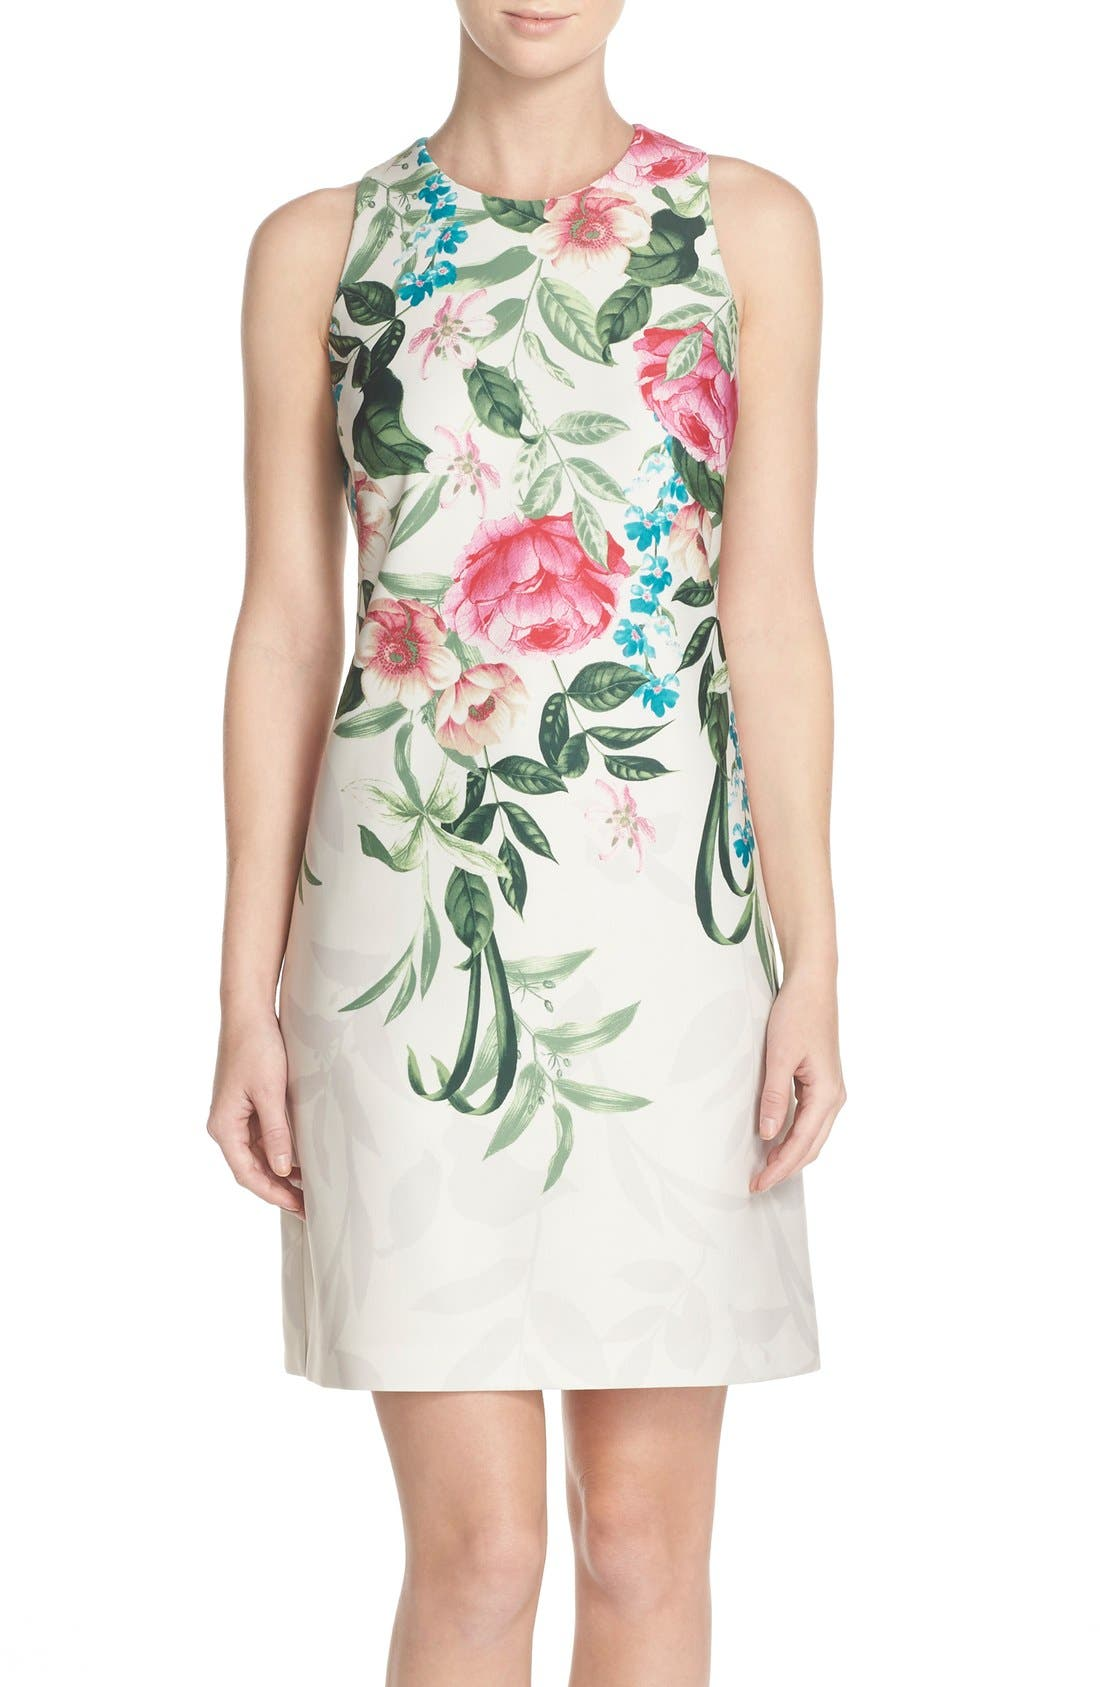 Alternate Image 1 Selected - Eliza J Placed Floral Print Stretch A-Line Dress (Regular & Petite)